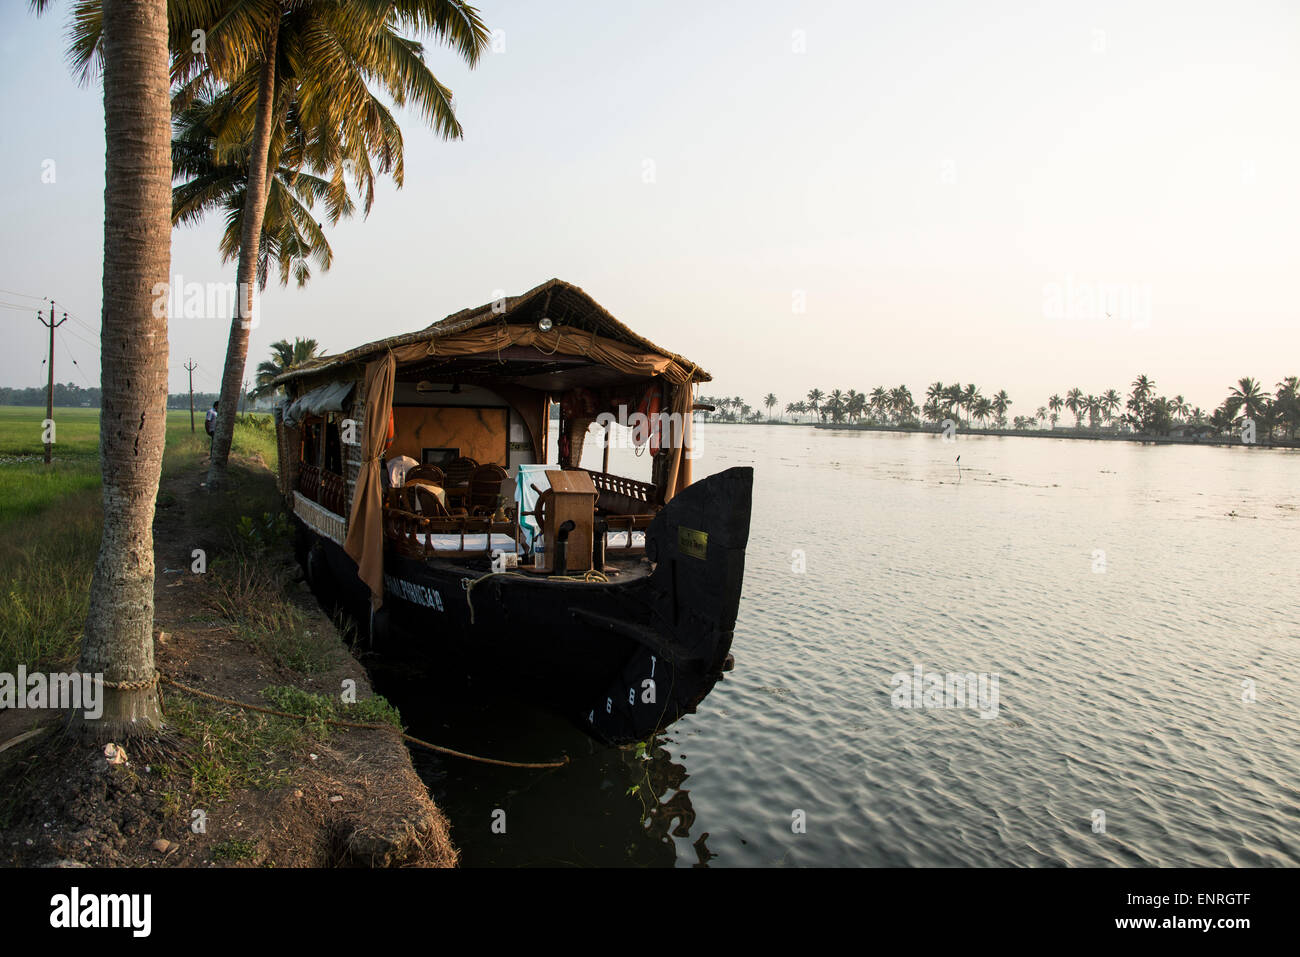 A  moored  House boat known locally as 'kettuvallam' along the picturesque and peaceful backwaters of Kerala - Stock Image